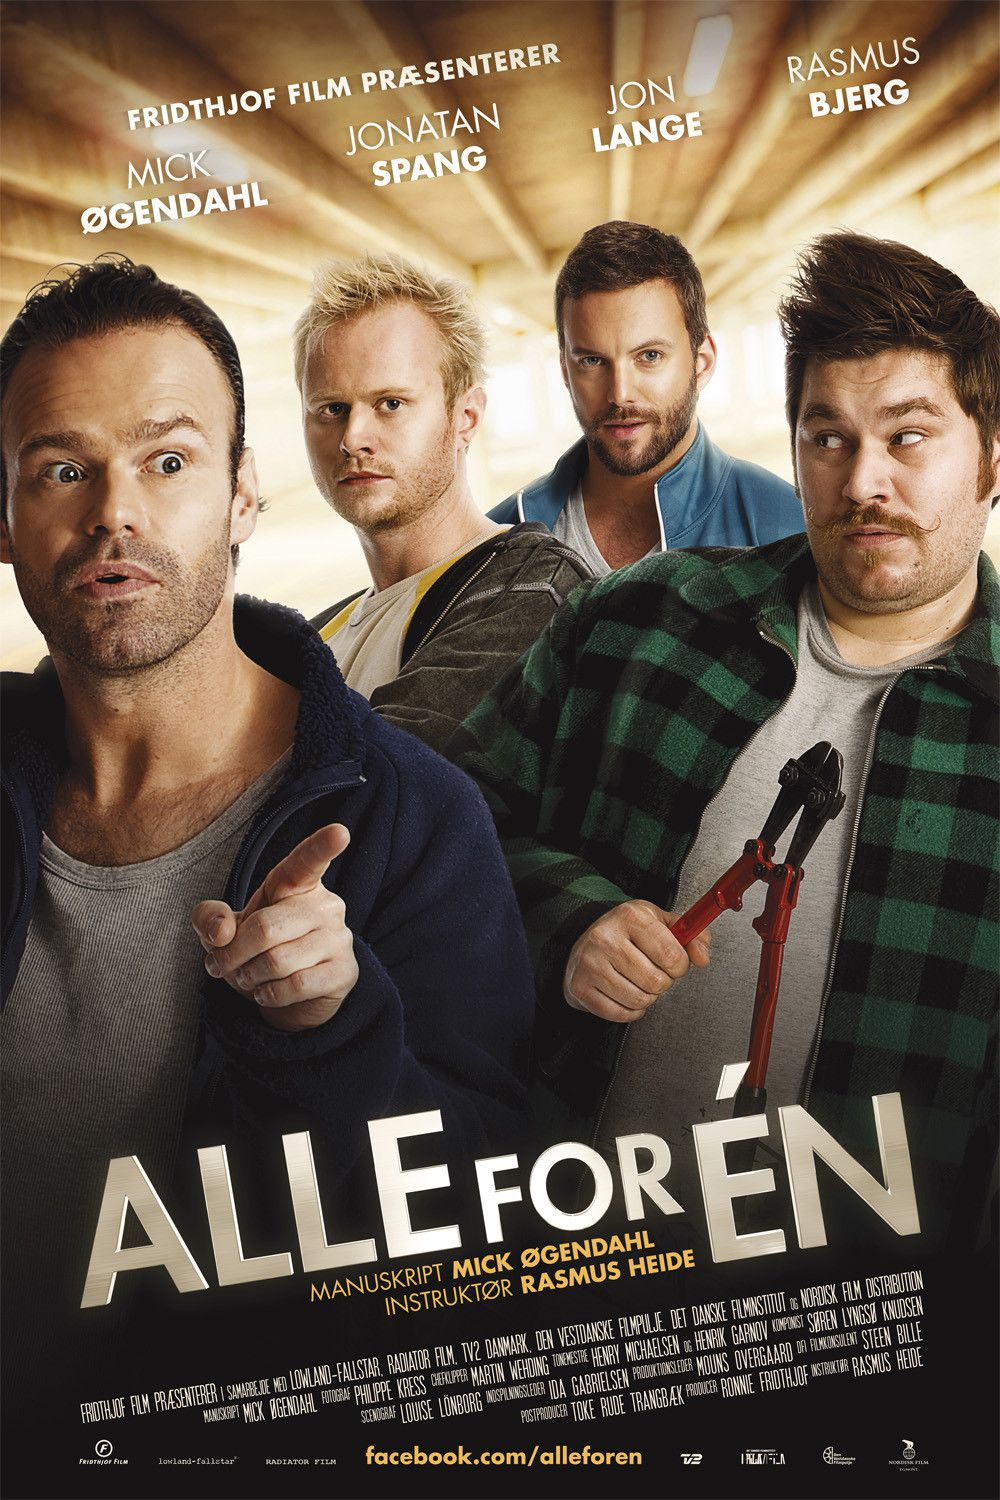 All for One - Film (2011)